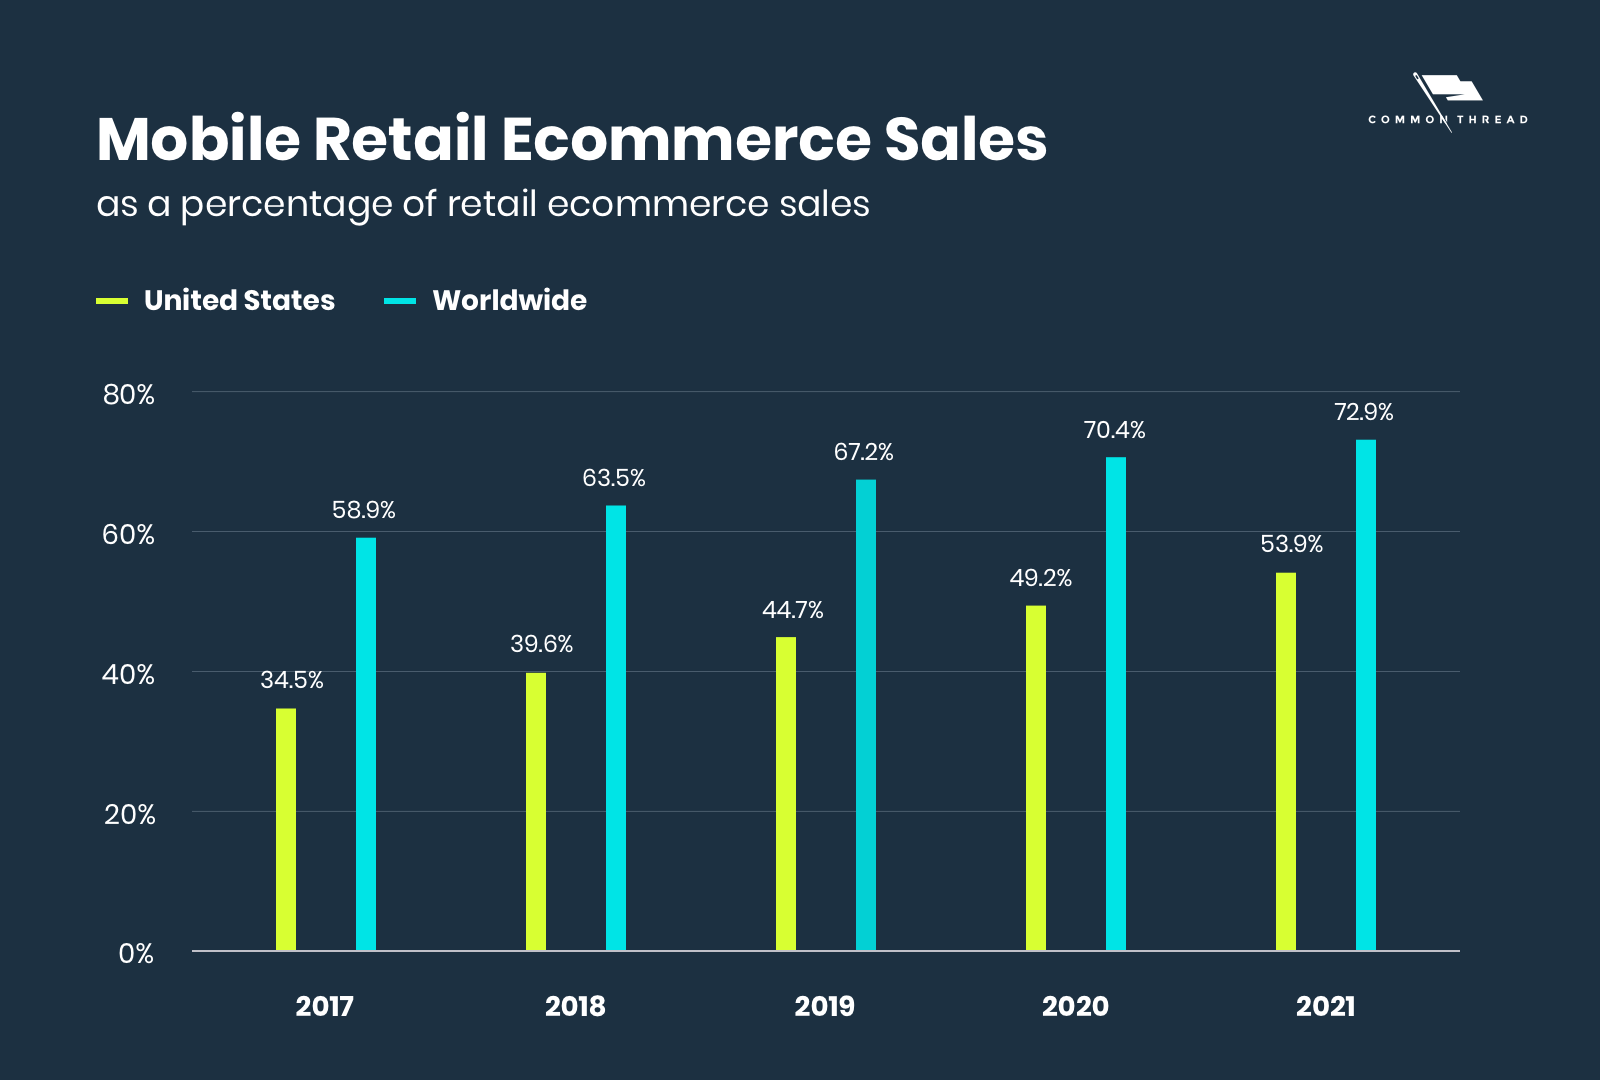 mobile retail ecommerce sales as a percentage of retail ecommerce sales